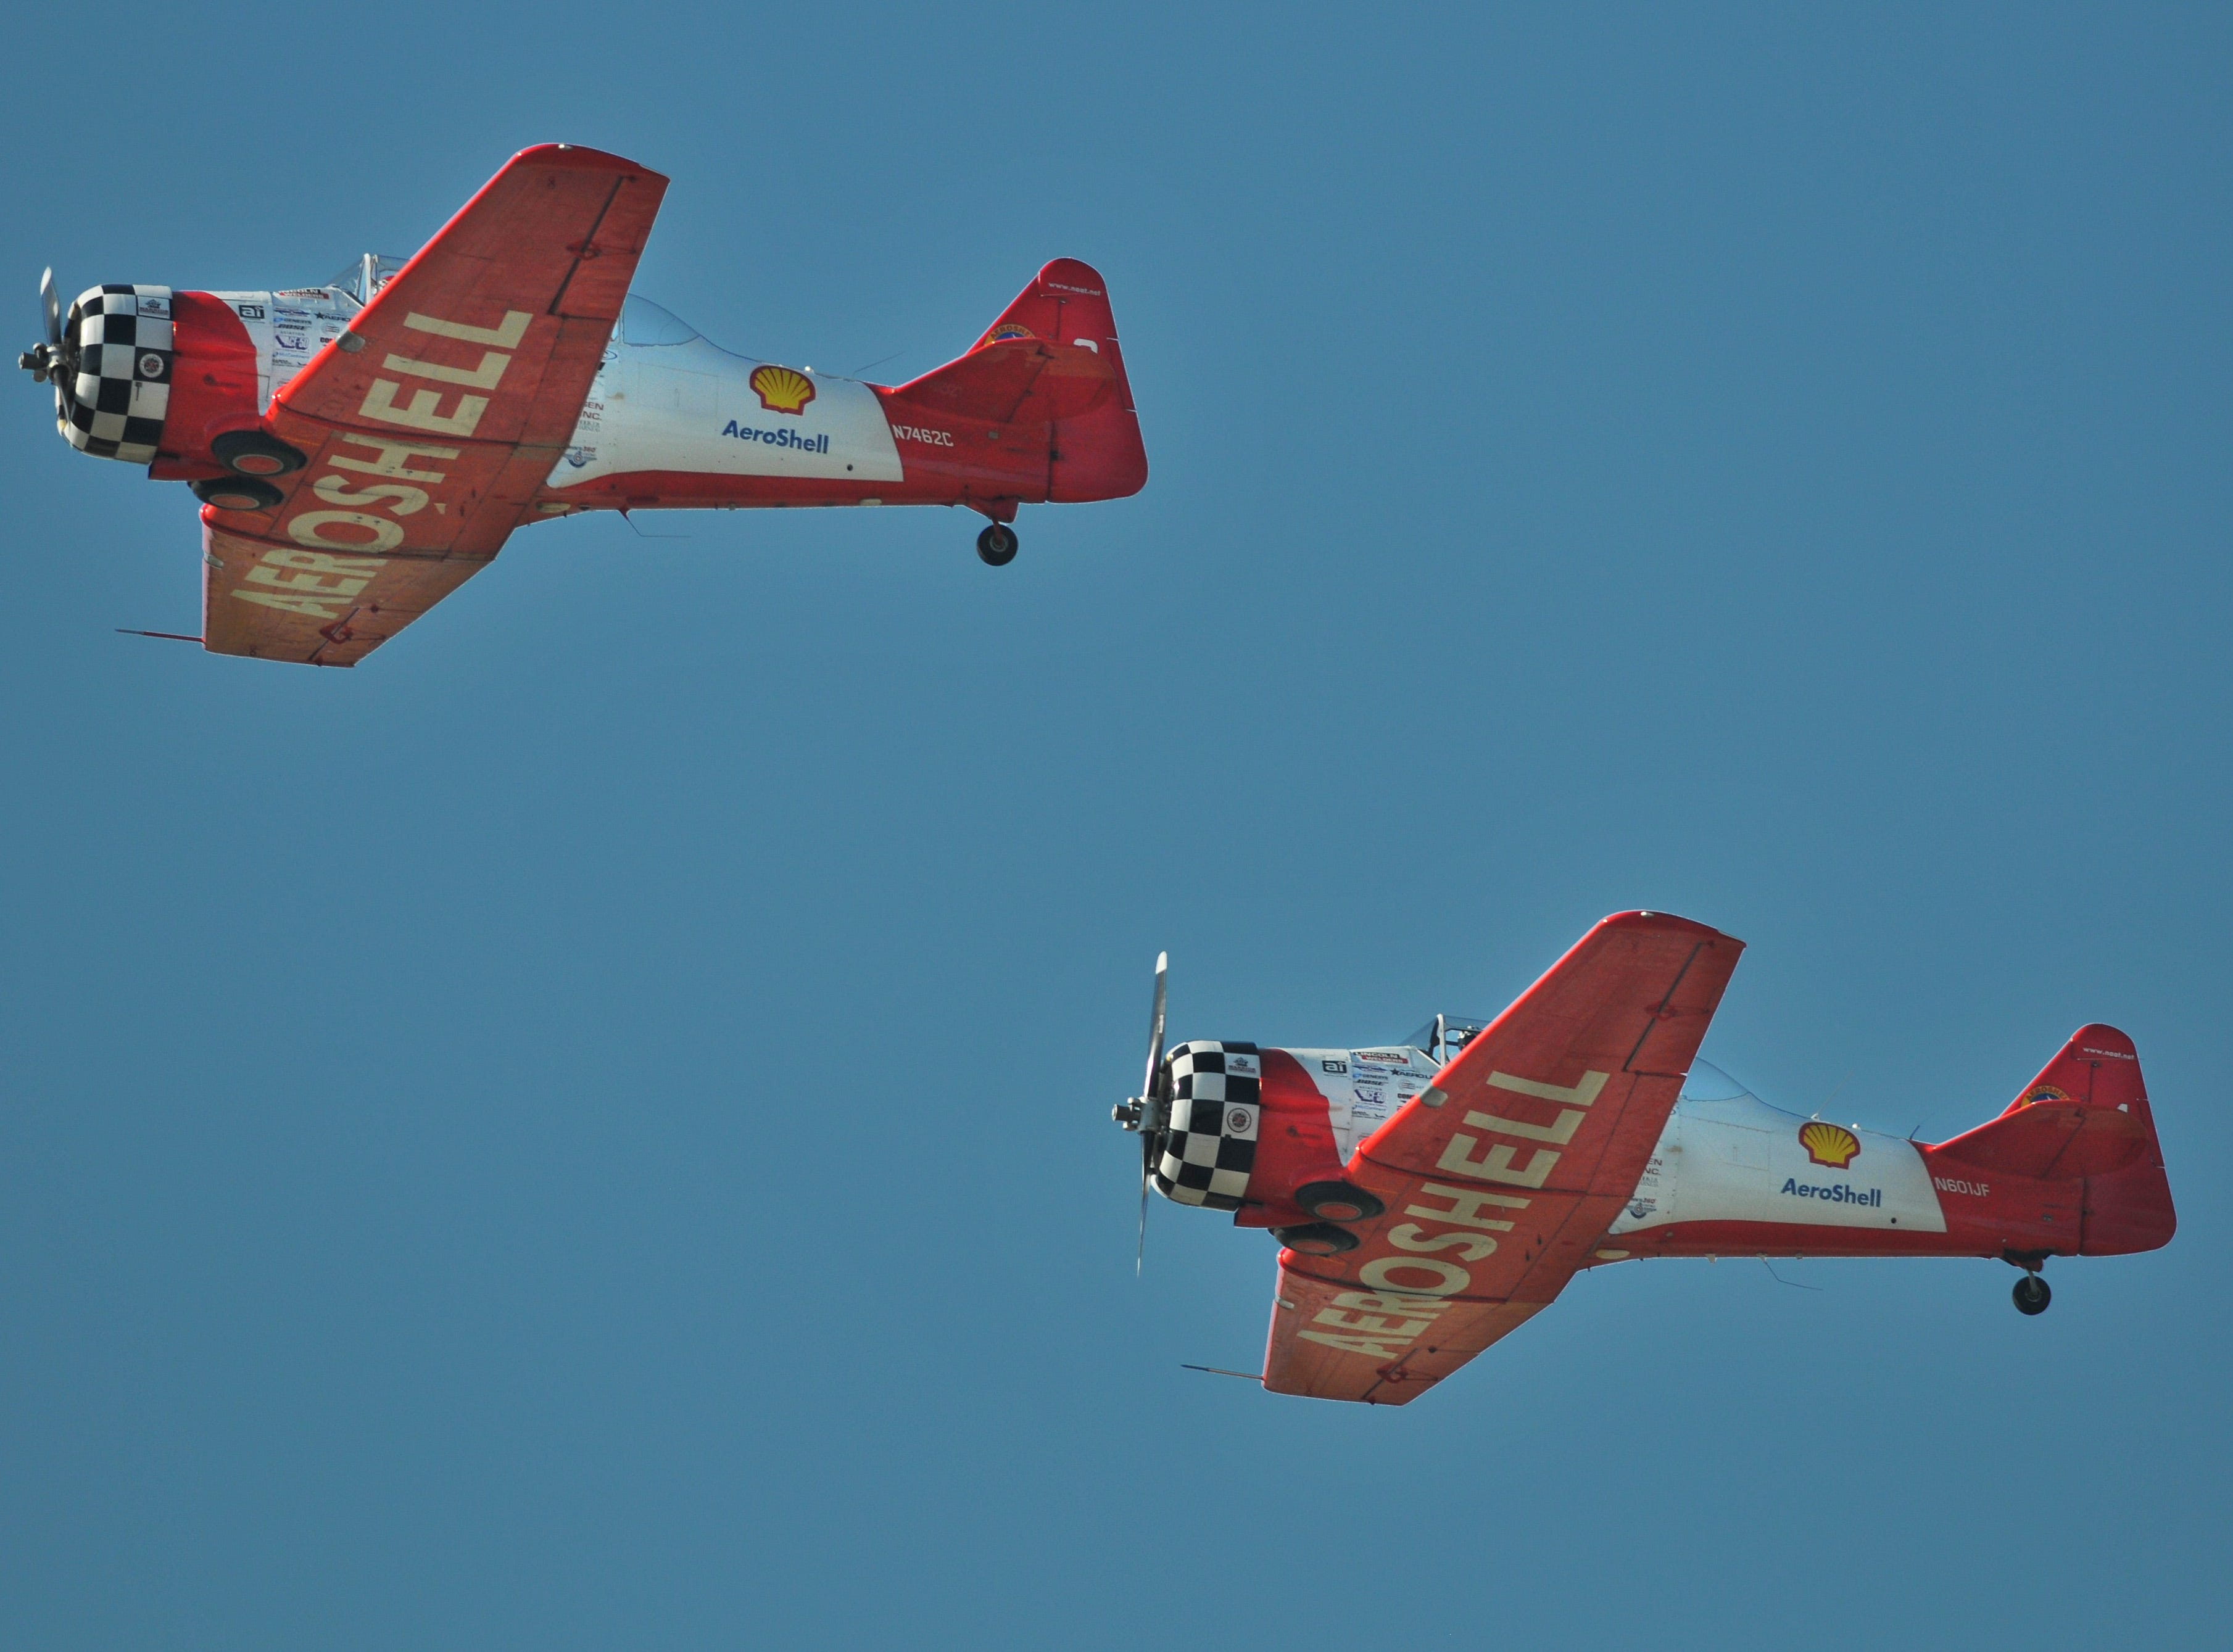 The Aeroshell Aerbatic team makes a pass over the runway. The 2019 Space Coast Warbird Air Show held their media day Thursday, promoting the Air Show that runs Friday, Saturday and Sunday at Space Coast Regional Airport in Titusville, with a Friday afternoon and evening show with fireworks, and shows Saturday and Sunday afternoon.